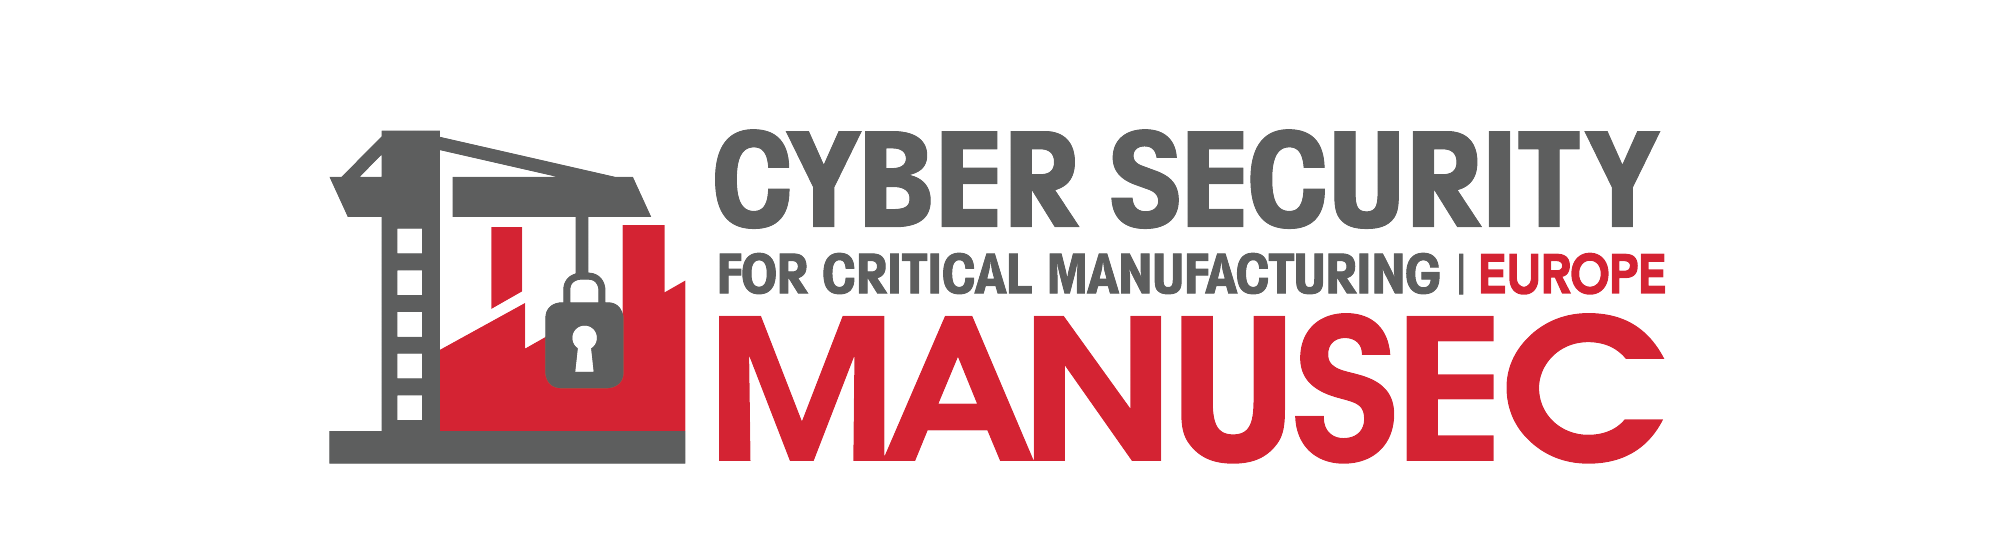 MANUSEC EUROPE – Cyber Security for Critical Manufacturing